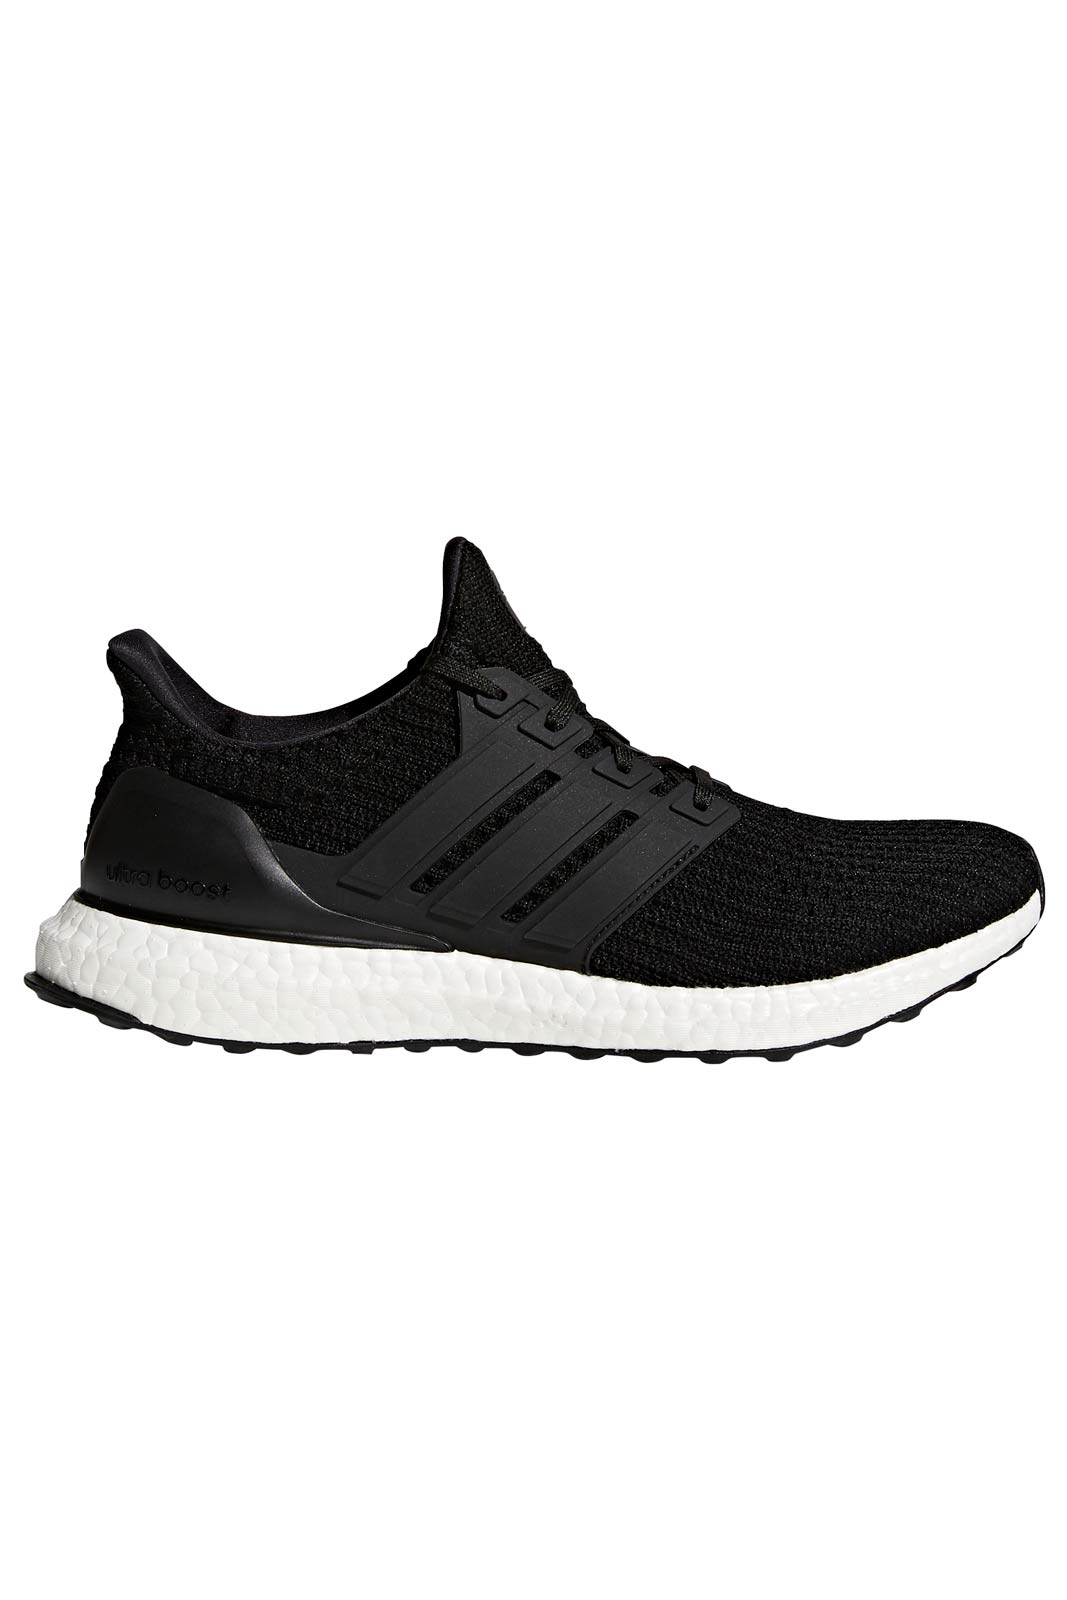 adidas pure boost 2.0 review